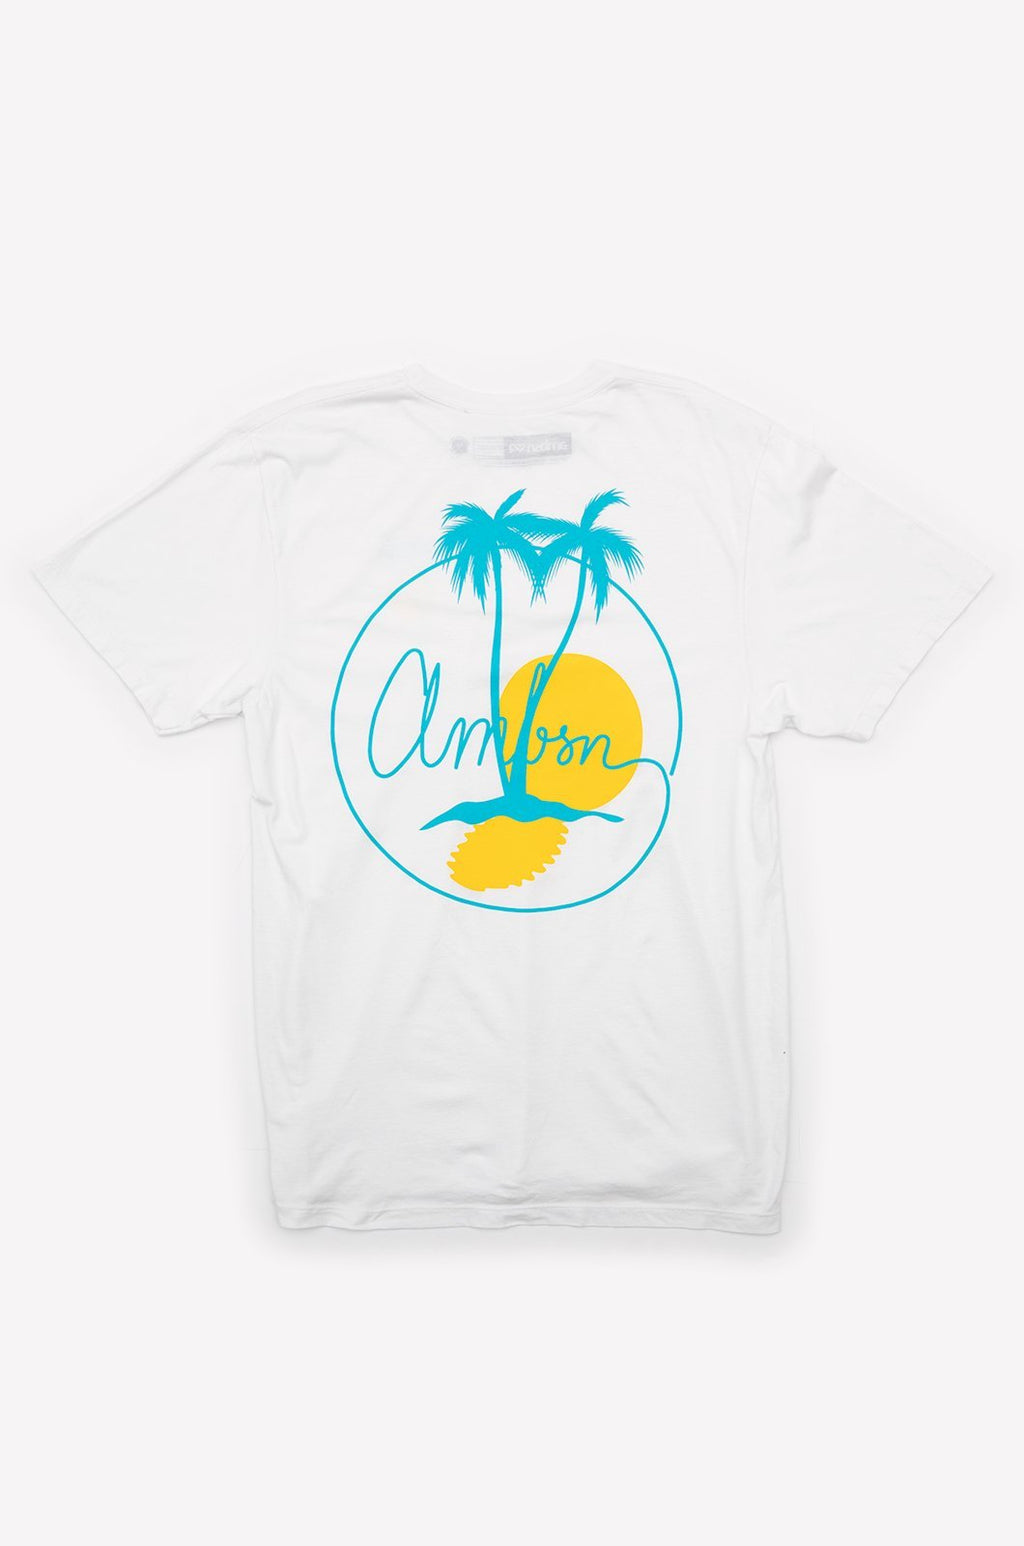 Sunset Palm T-Shirts ambsn